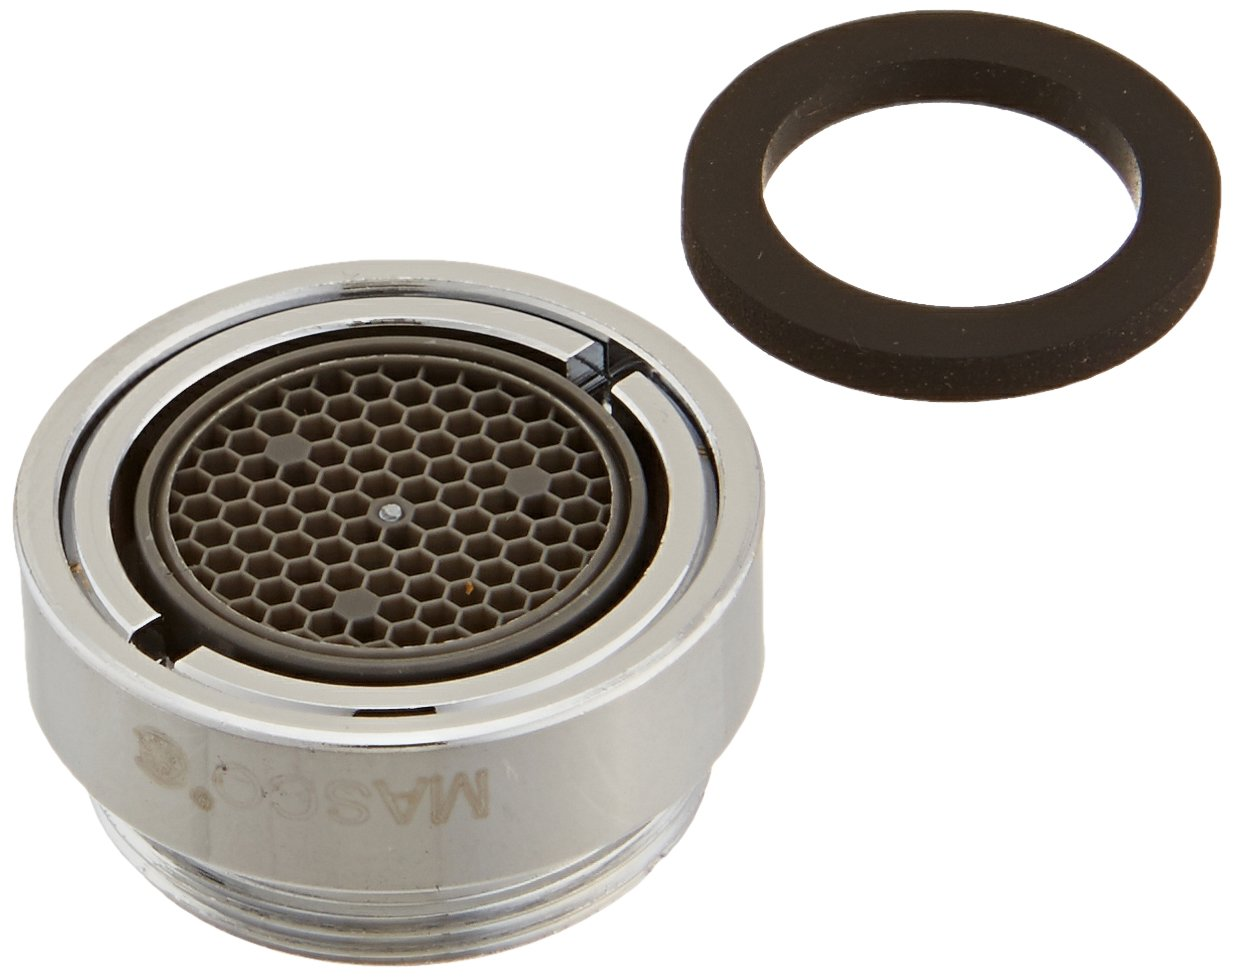 Delta Faucet RP246 Aerator for 2.0 GPM Vandal Proof, Chrome